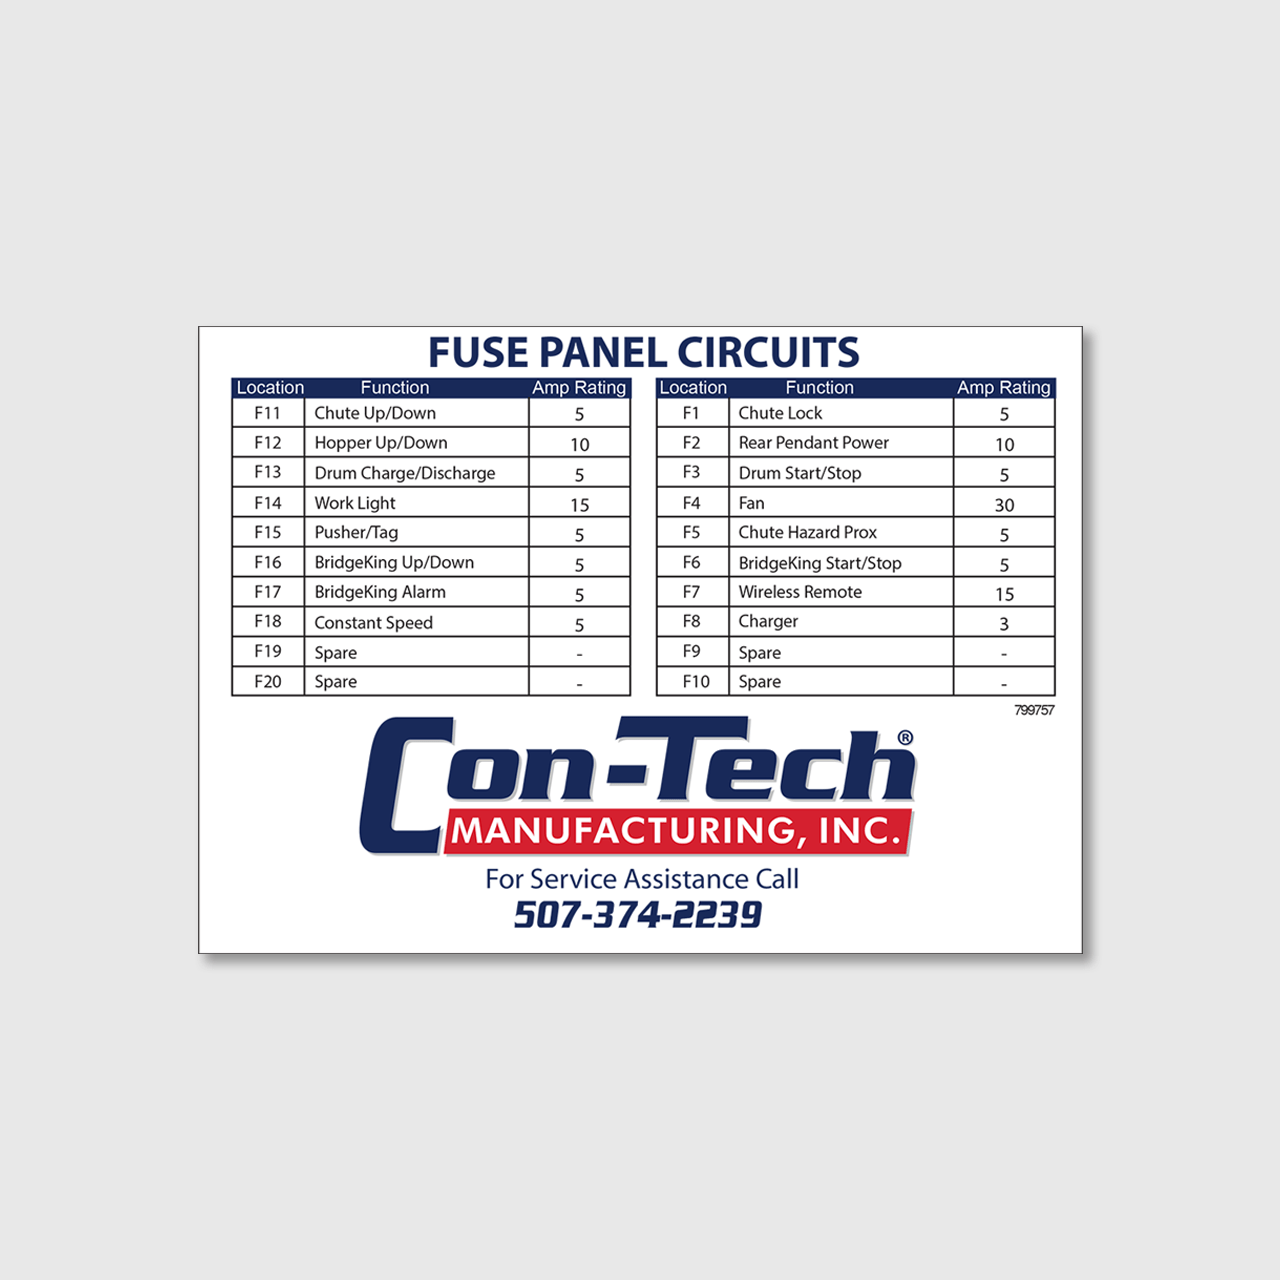 hight resolution of fuse panel circuits decal